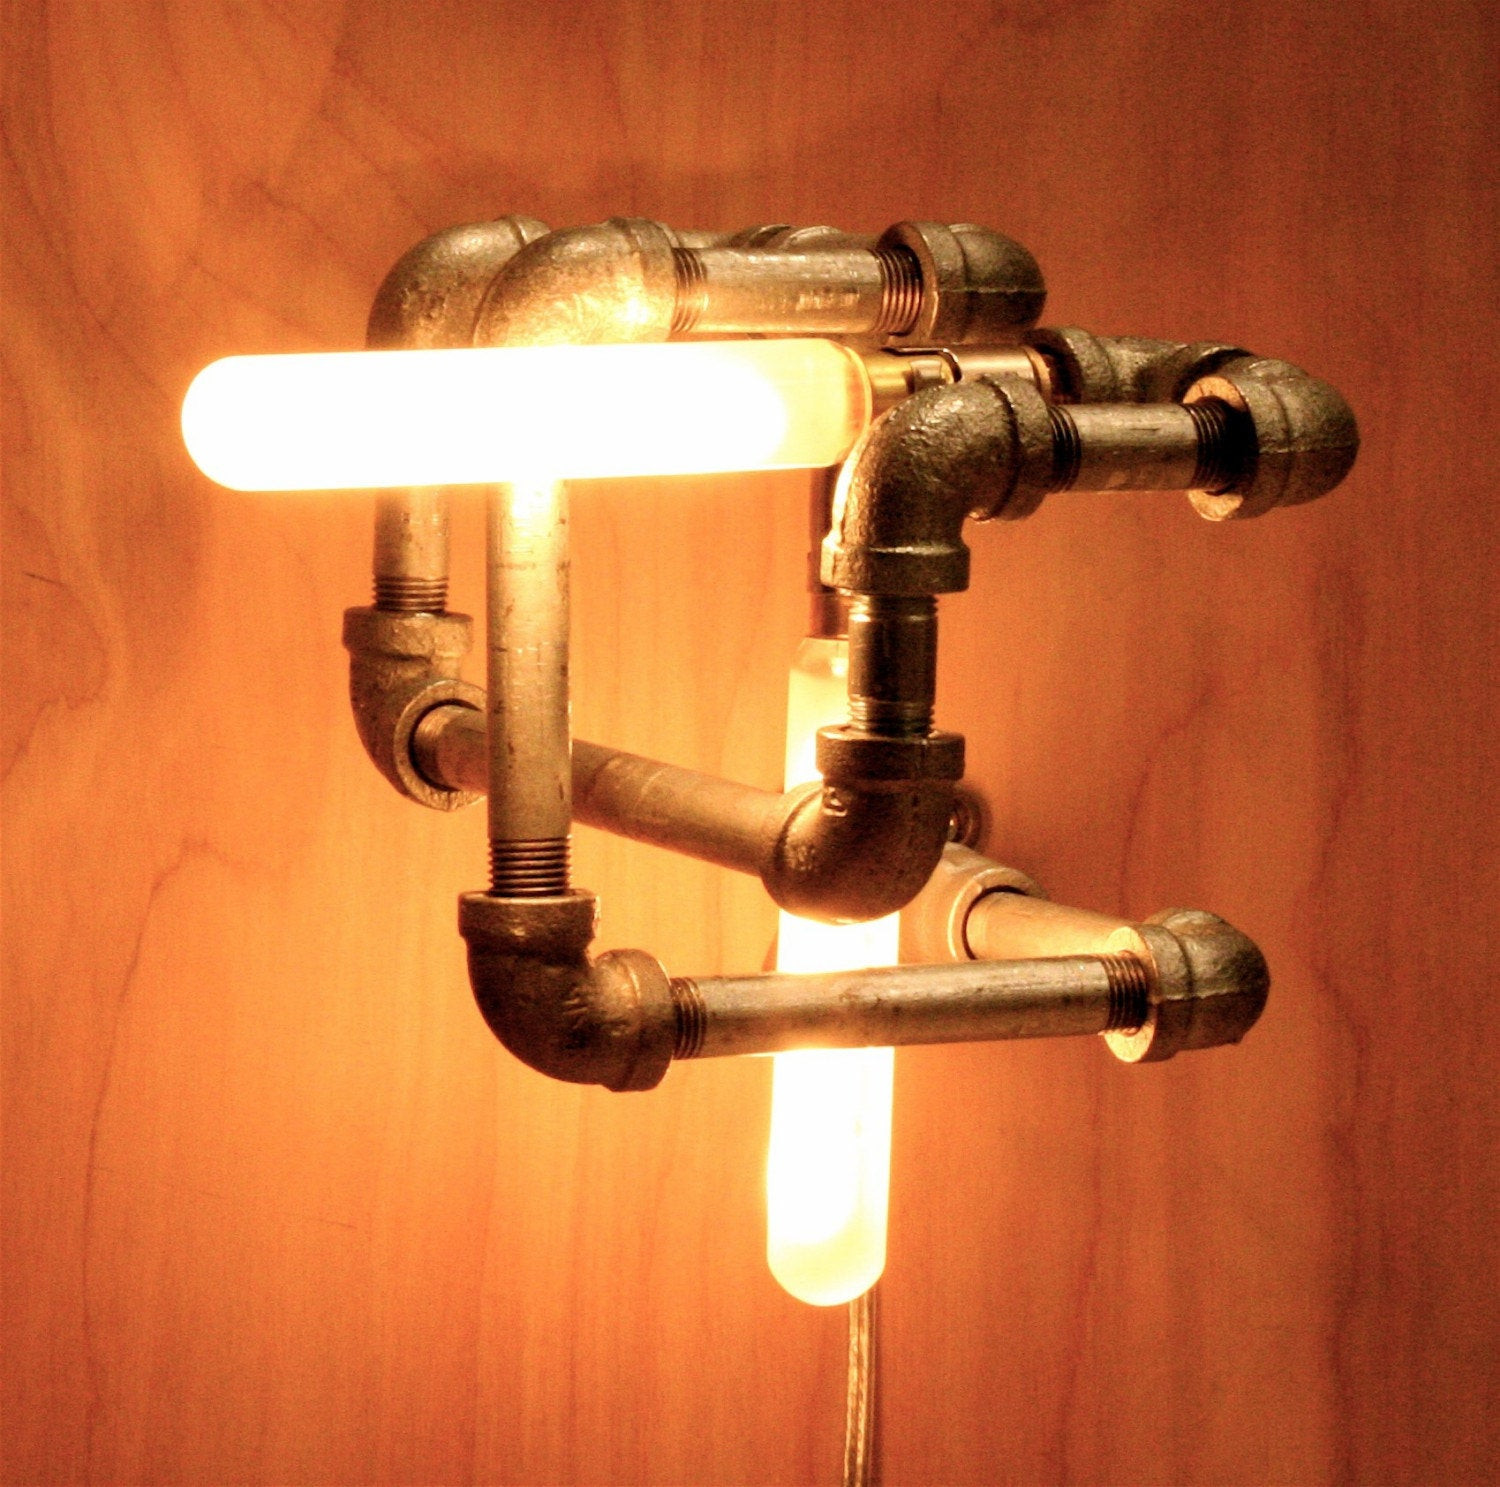 Best ideas about DIY Pipe Lights . Save or Pin LET S STAY Cool Pipe Lighting Design Now.